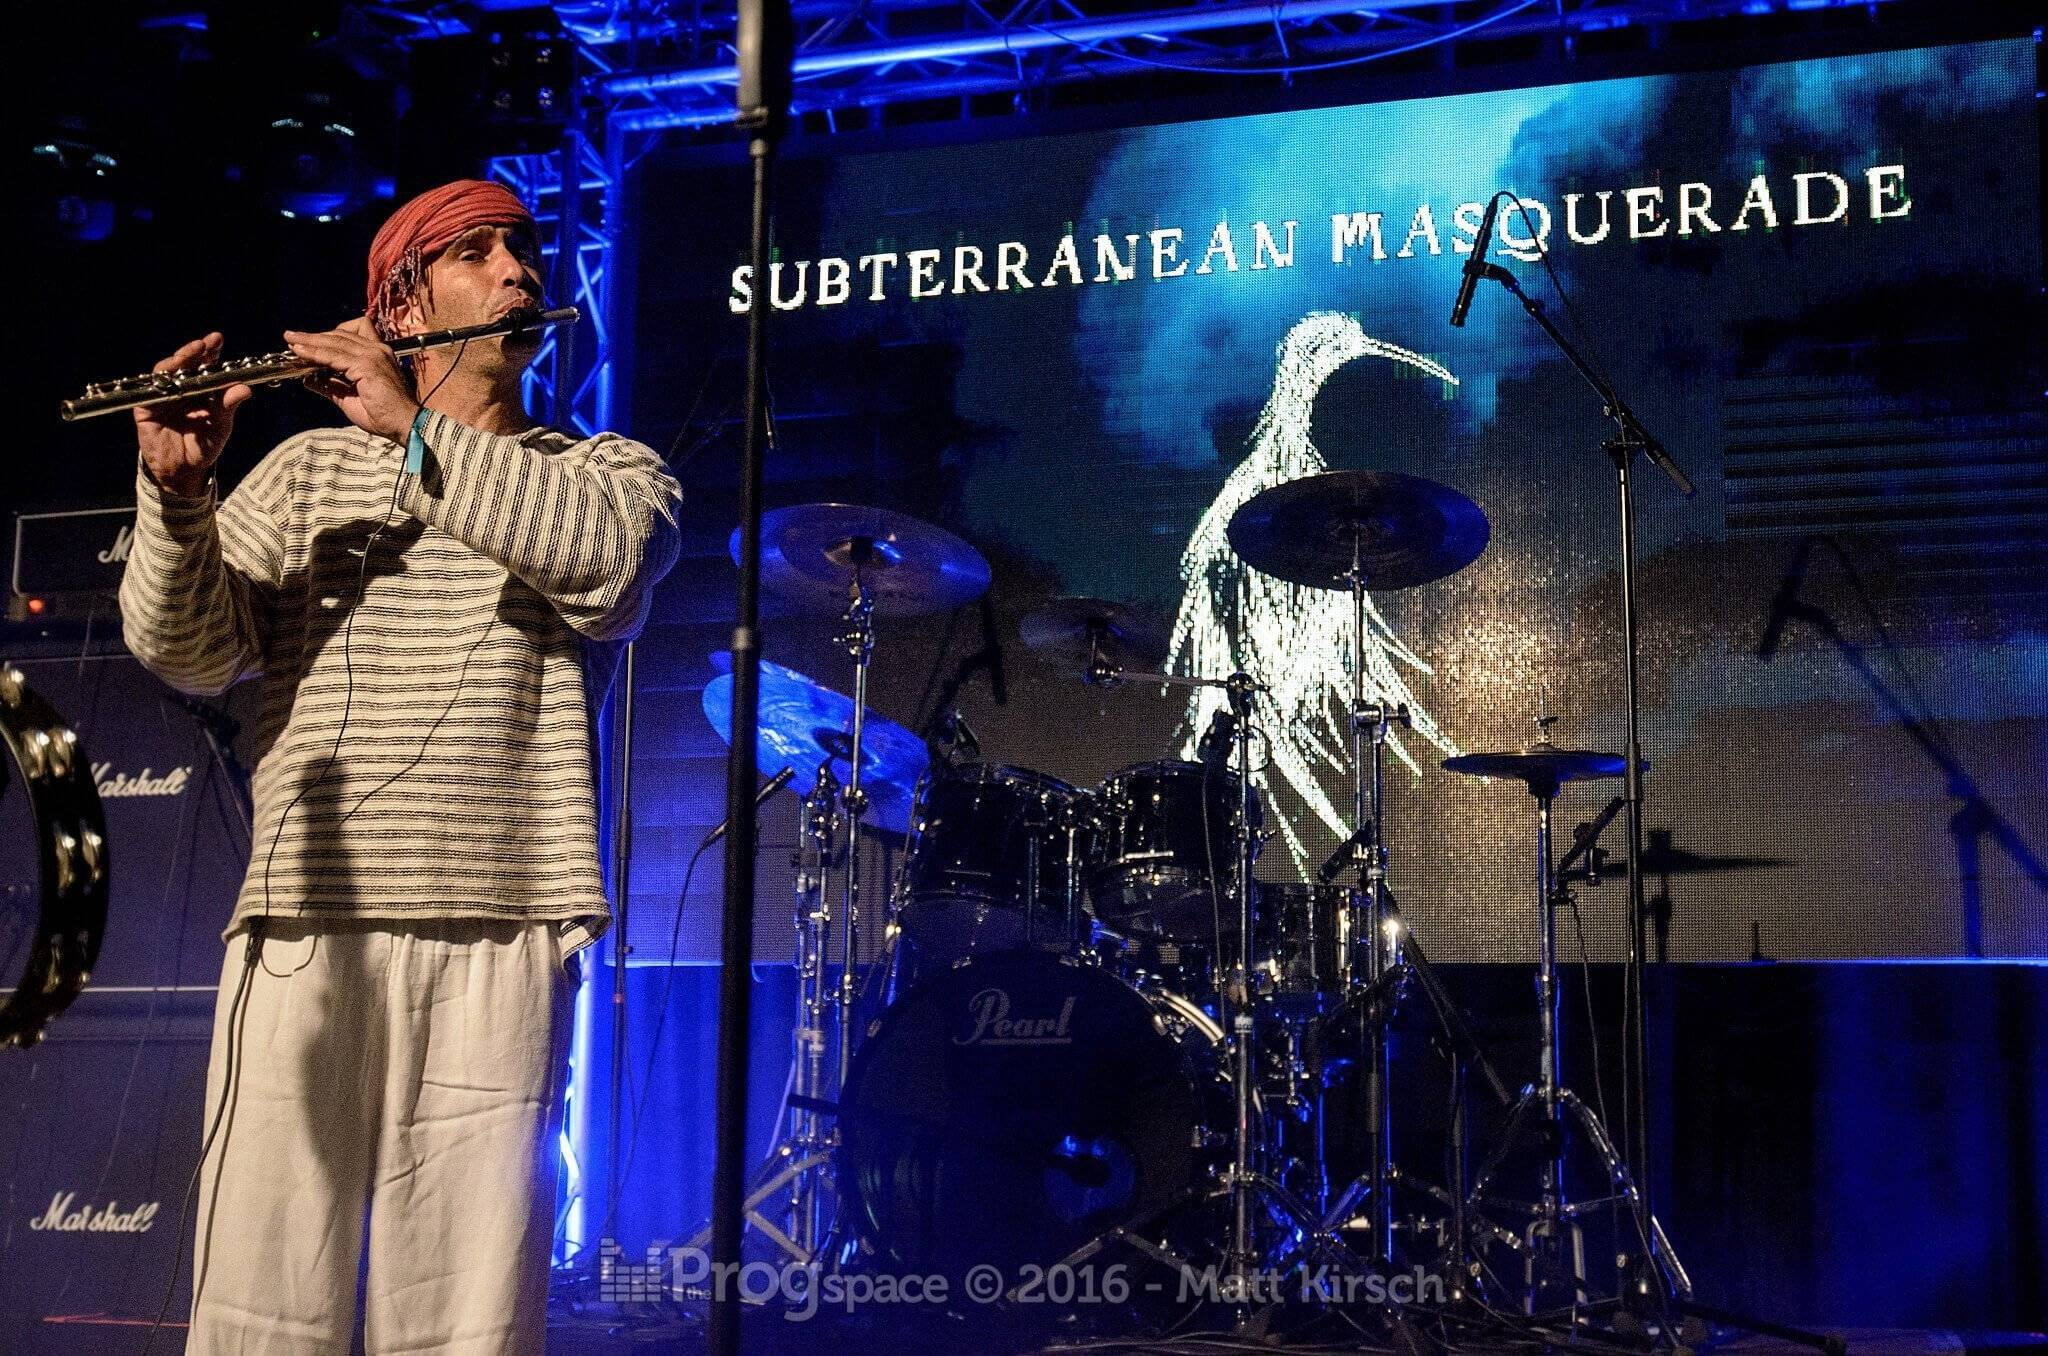 Subterranean Masquerade at ProgPower Europe 2016